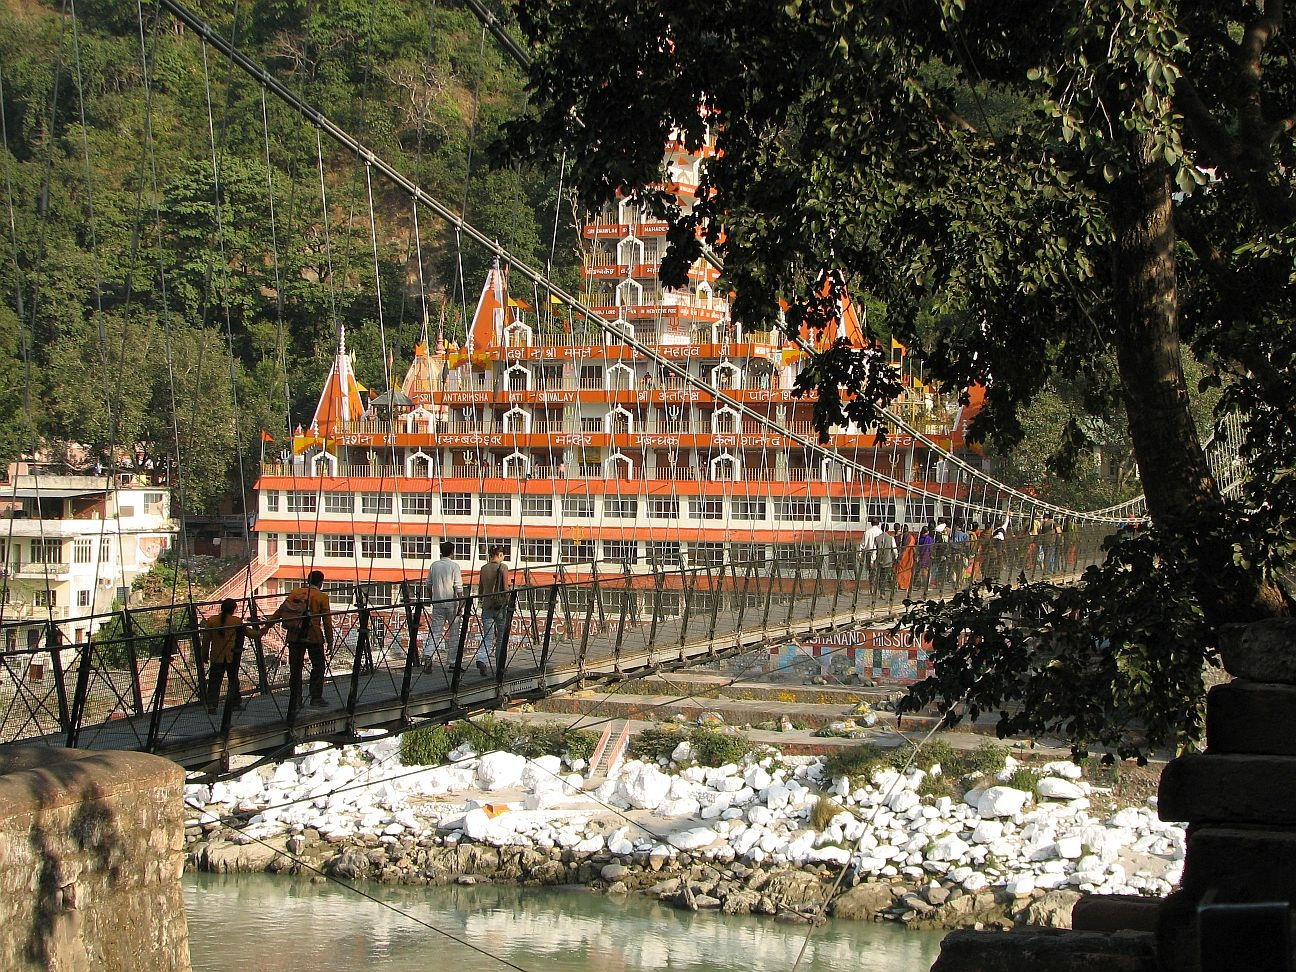 Lakshman Jhoola (rope bridge), Rishikesh